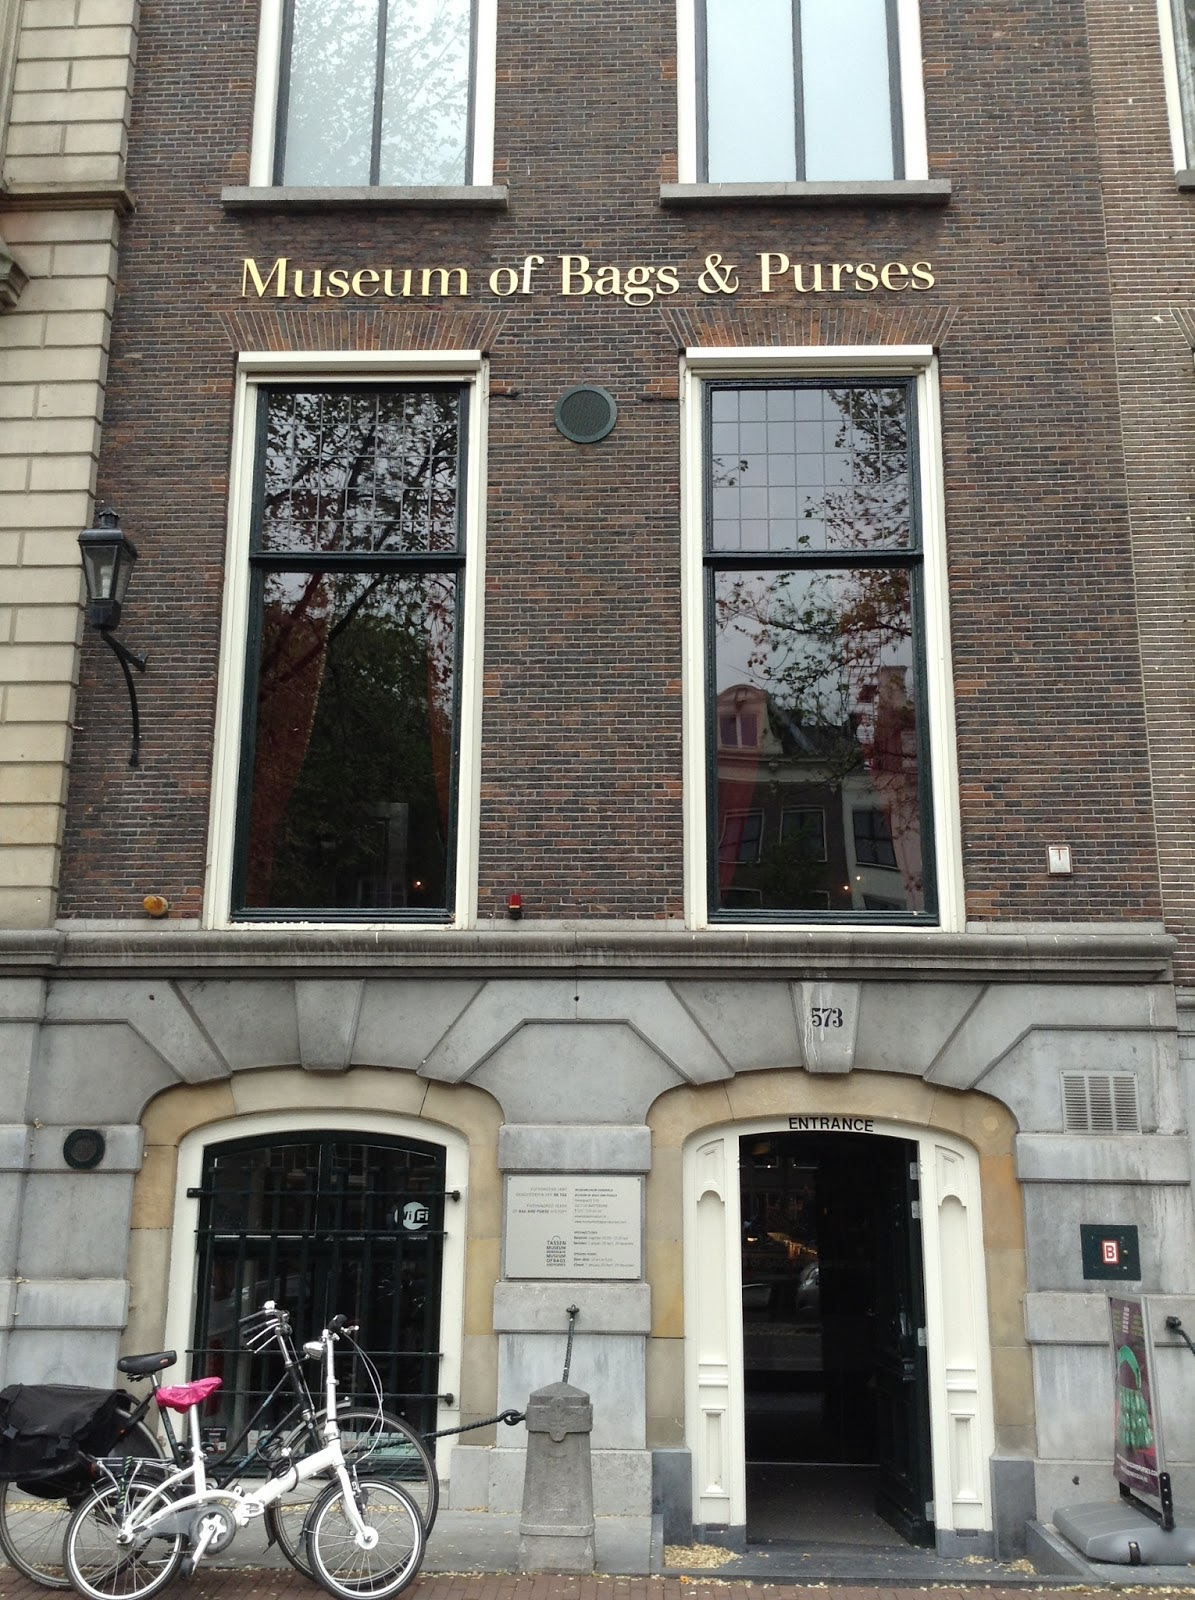 http://msmadge.blogspot.co.uk/2013/05/museum-of-bags-and-purses-amsterdam.html